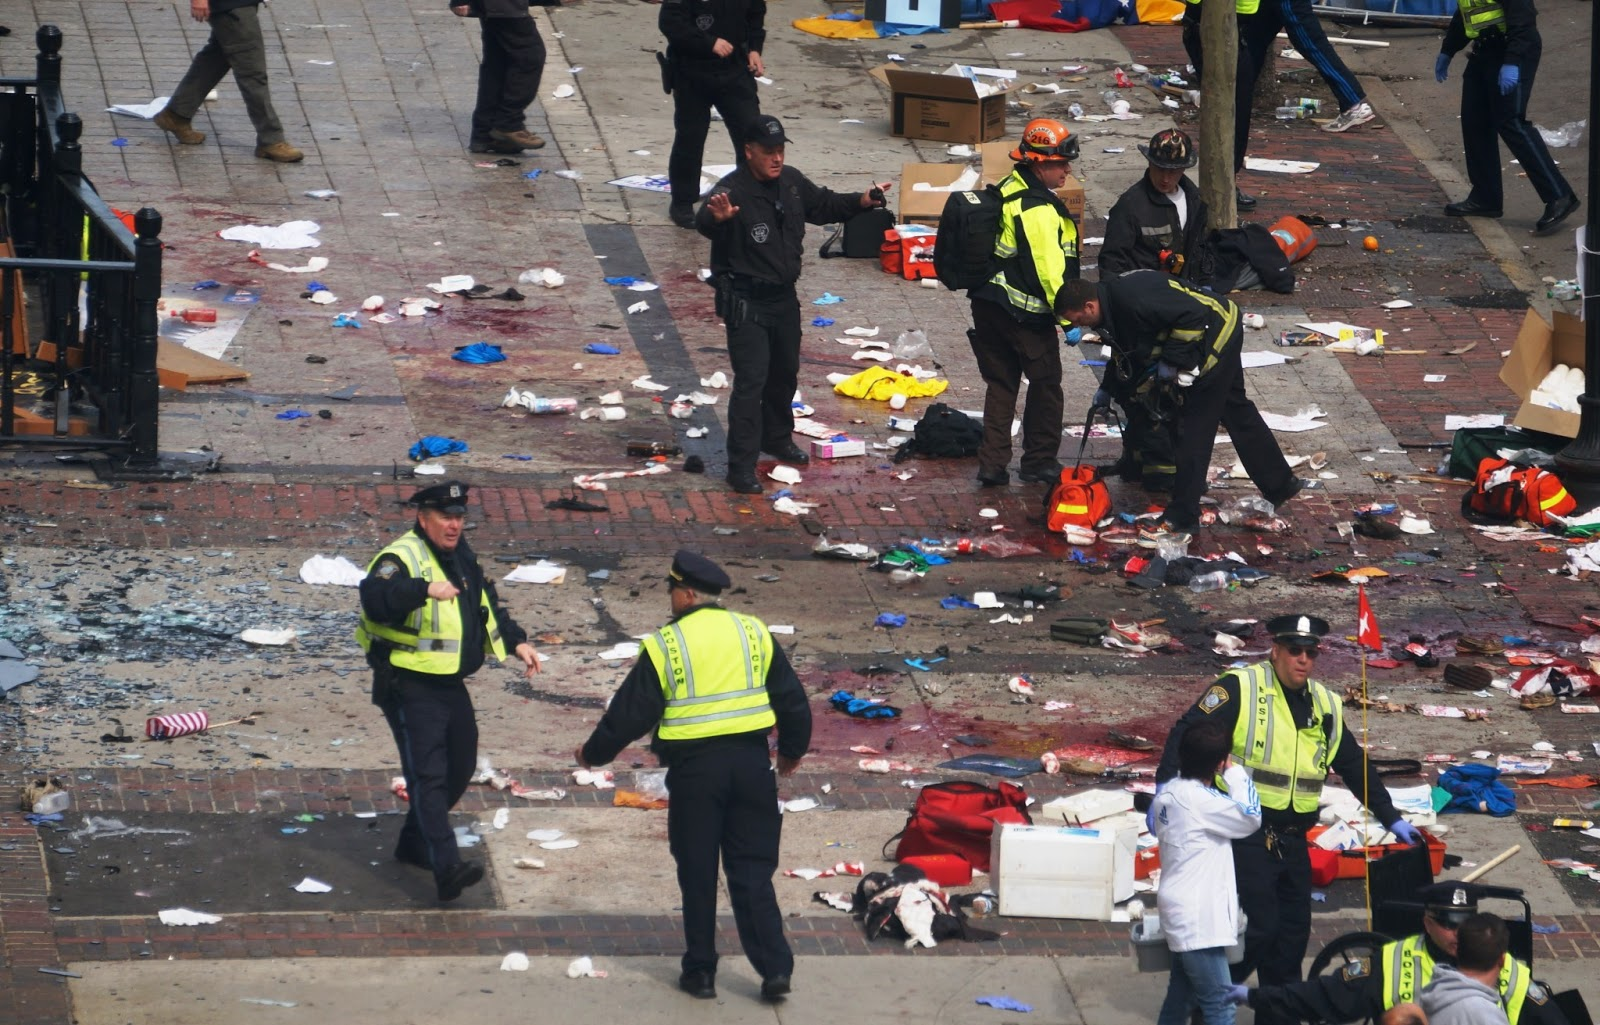 Terrorism In Britain And The United States: Thoughts From a